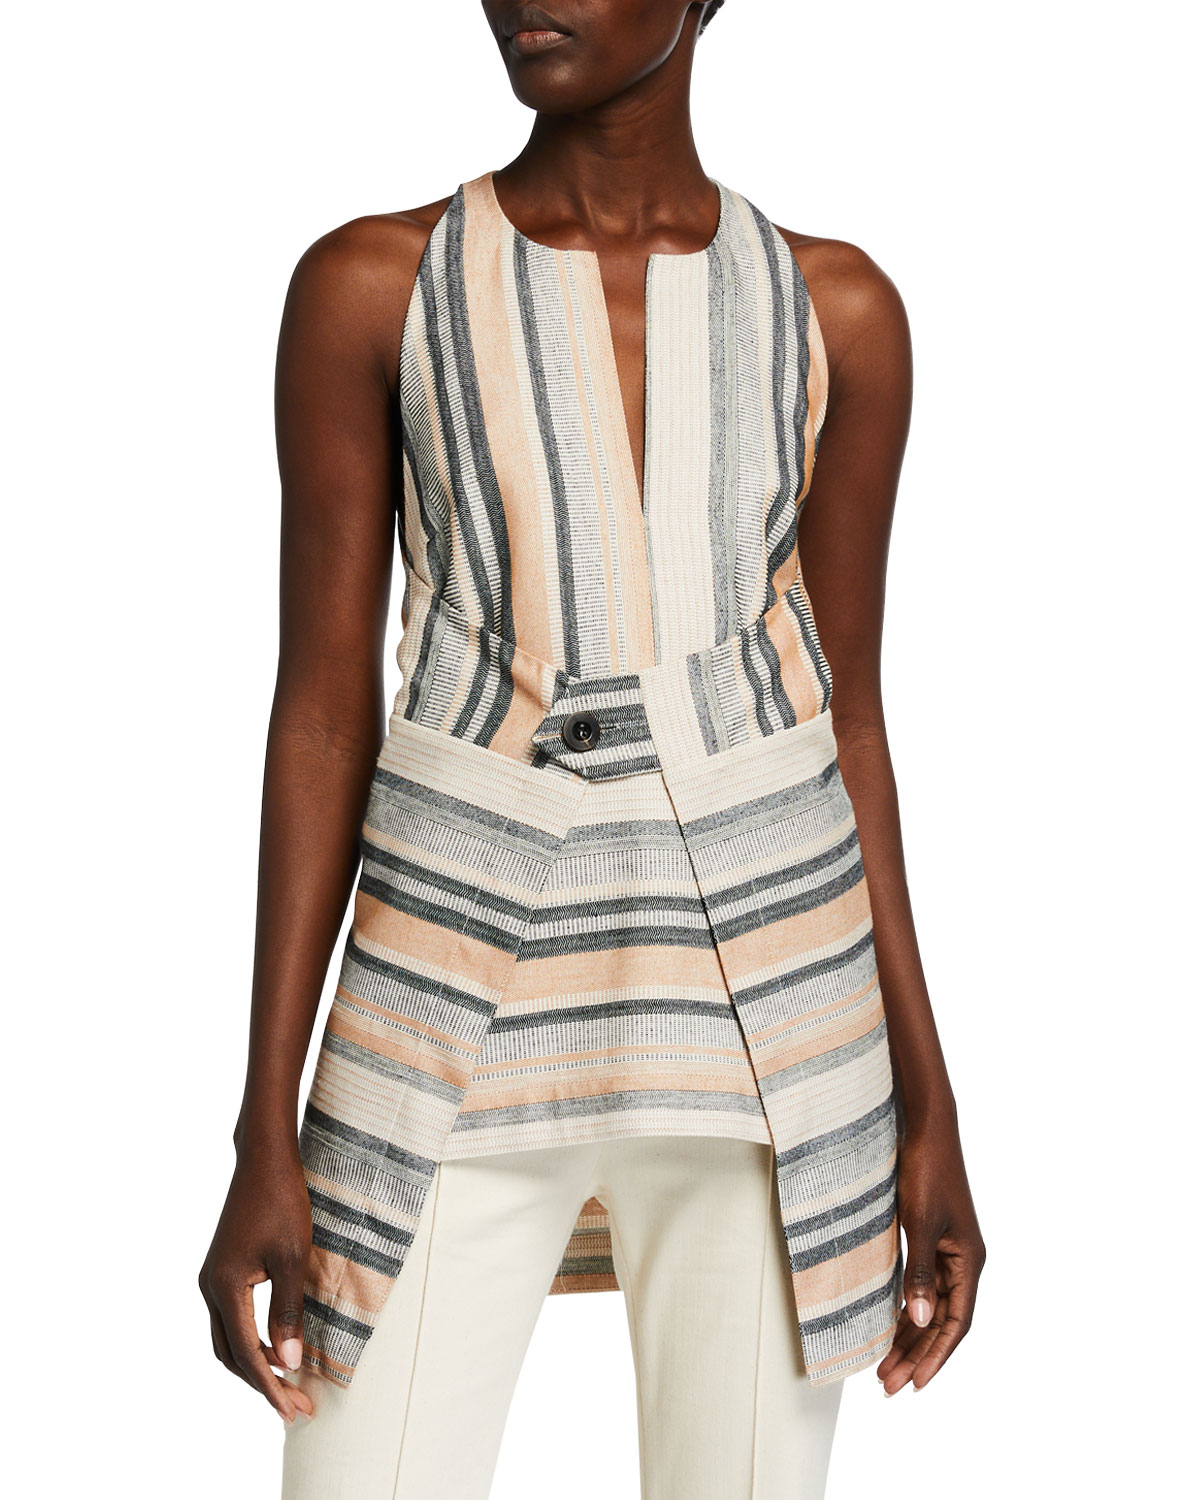 Rosetta Getty Striped Barre Jacquard Apron Top